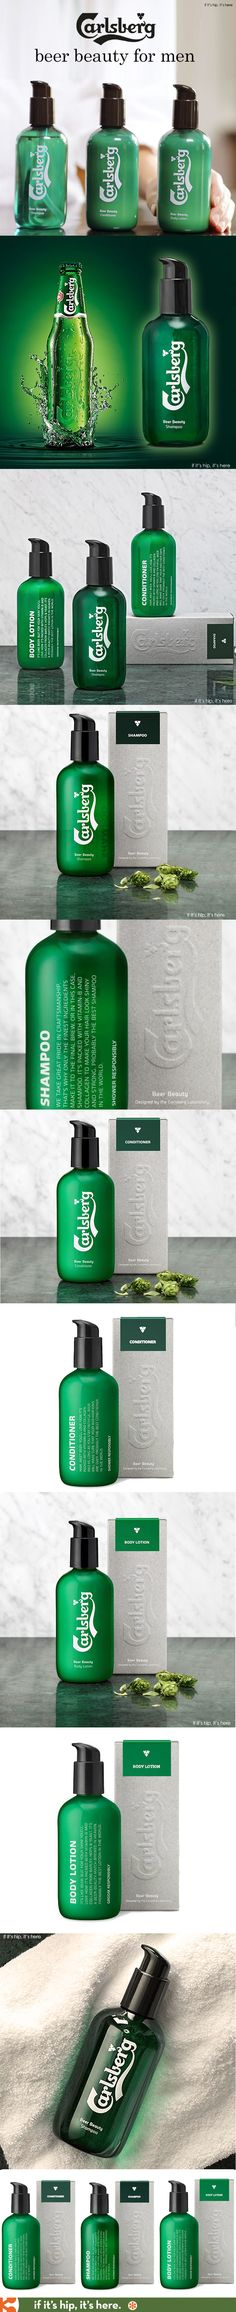 Carlsberg launches Beer Beauty: Grooming products for men made with real beer.